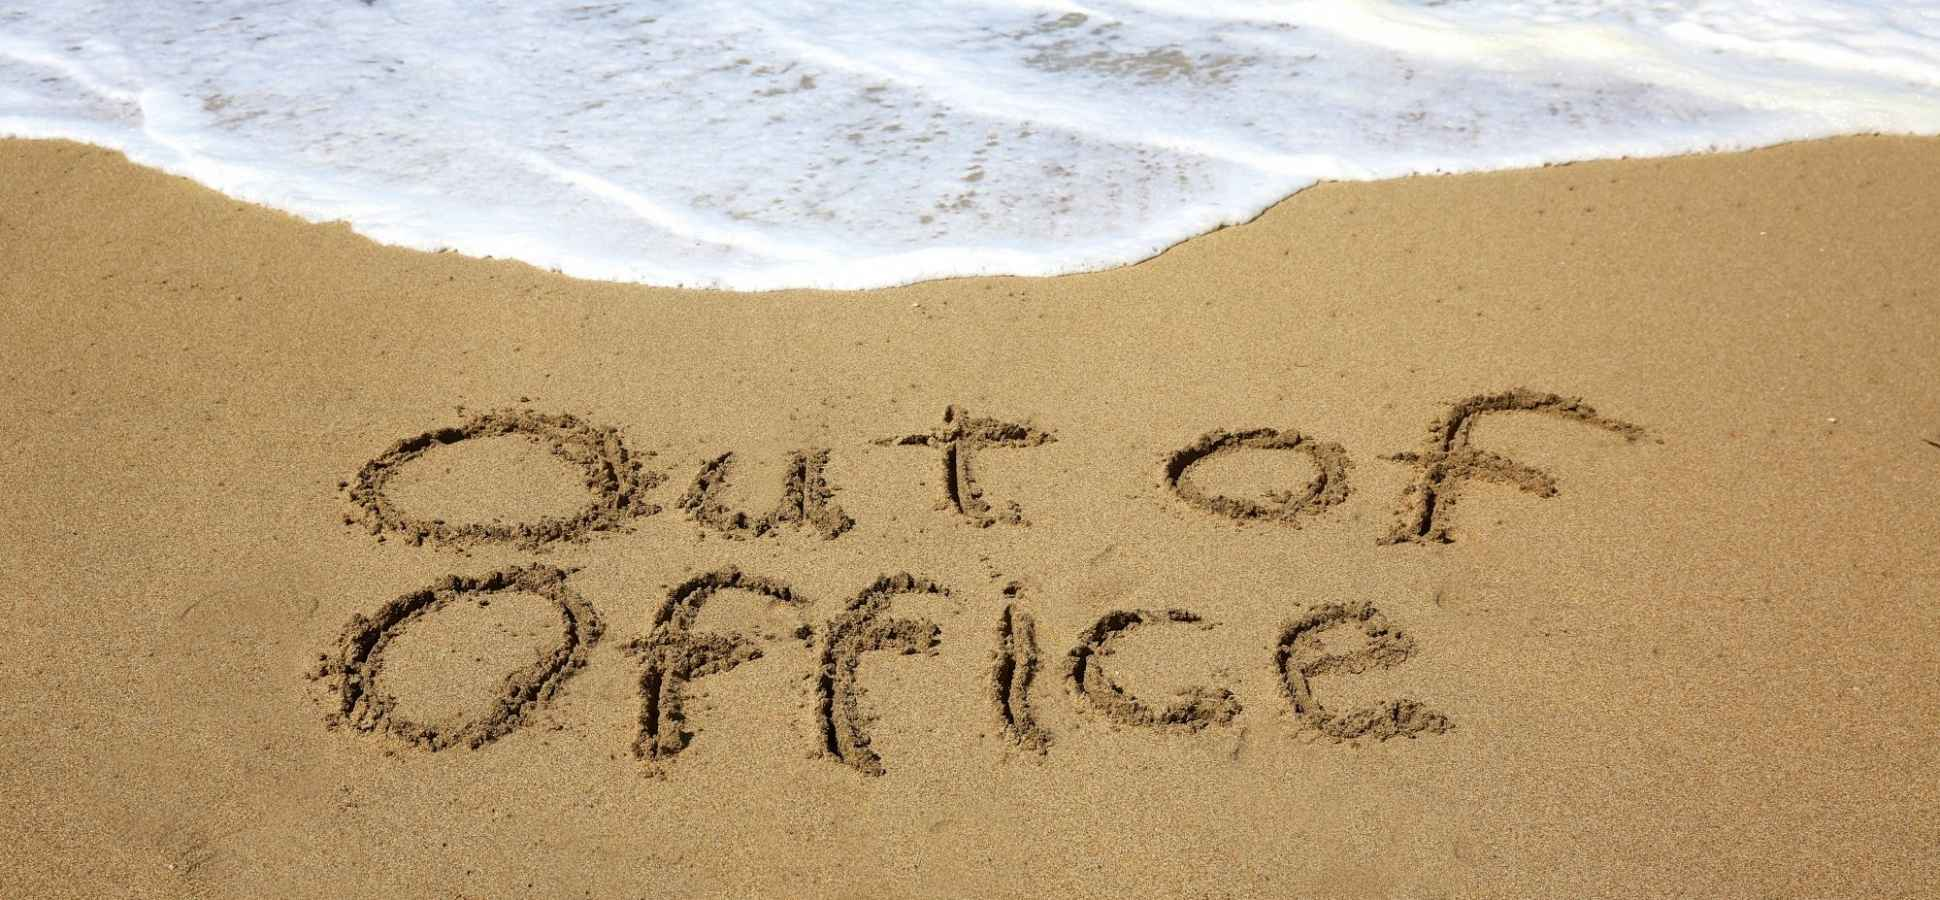 Taking a Day Off? It's Best to Skip the Excuses | Inc com